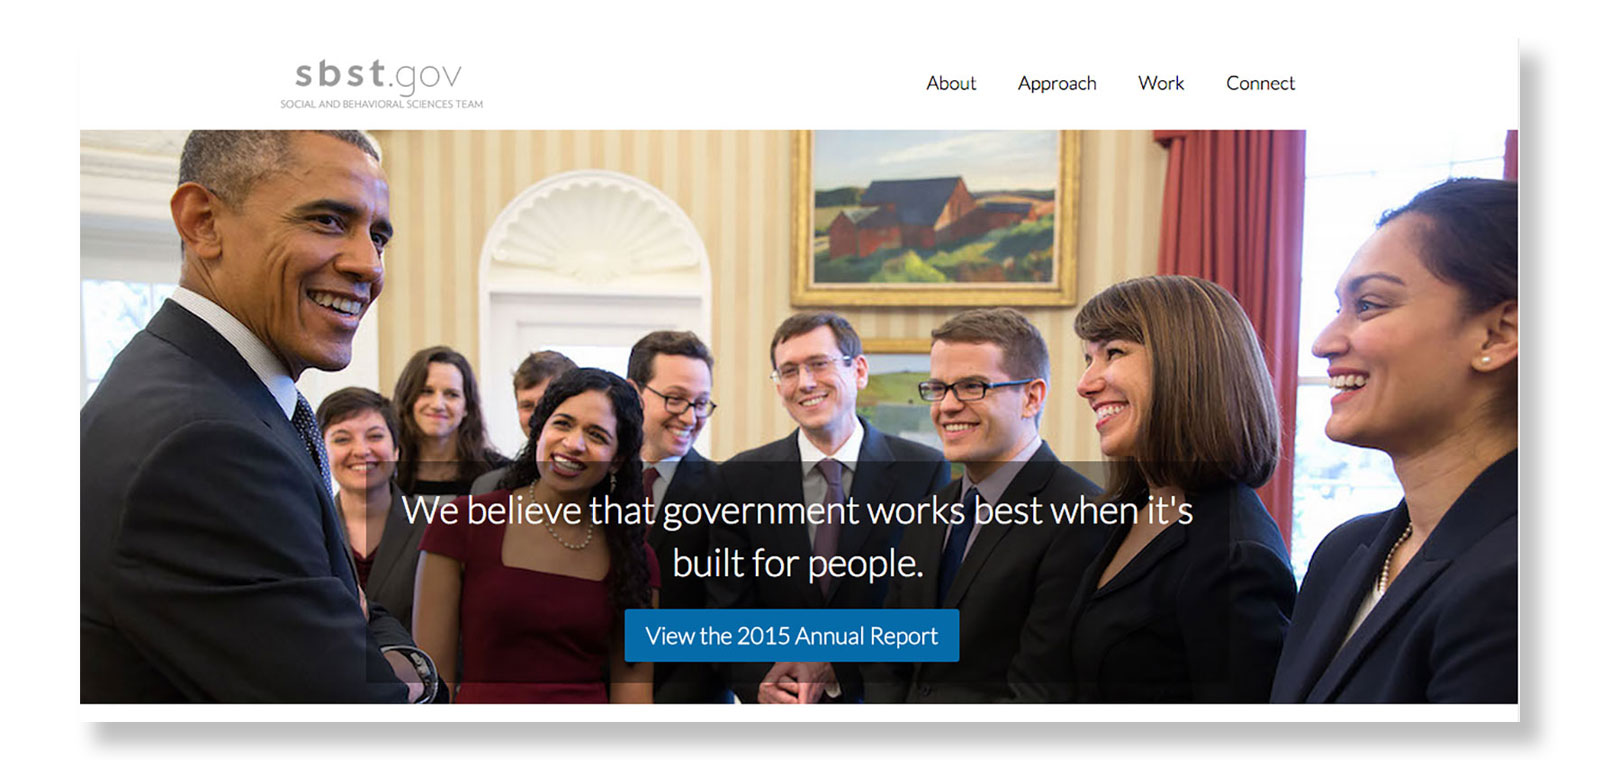 The new White House Social and Behavioral Sciences Team homepage